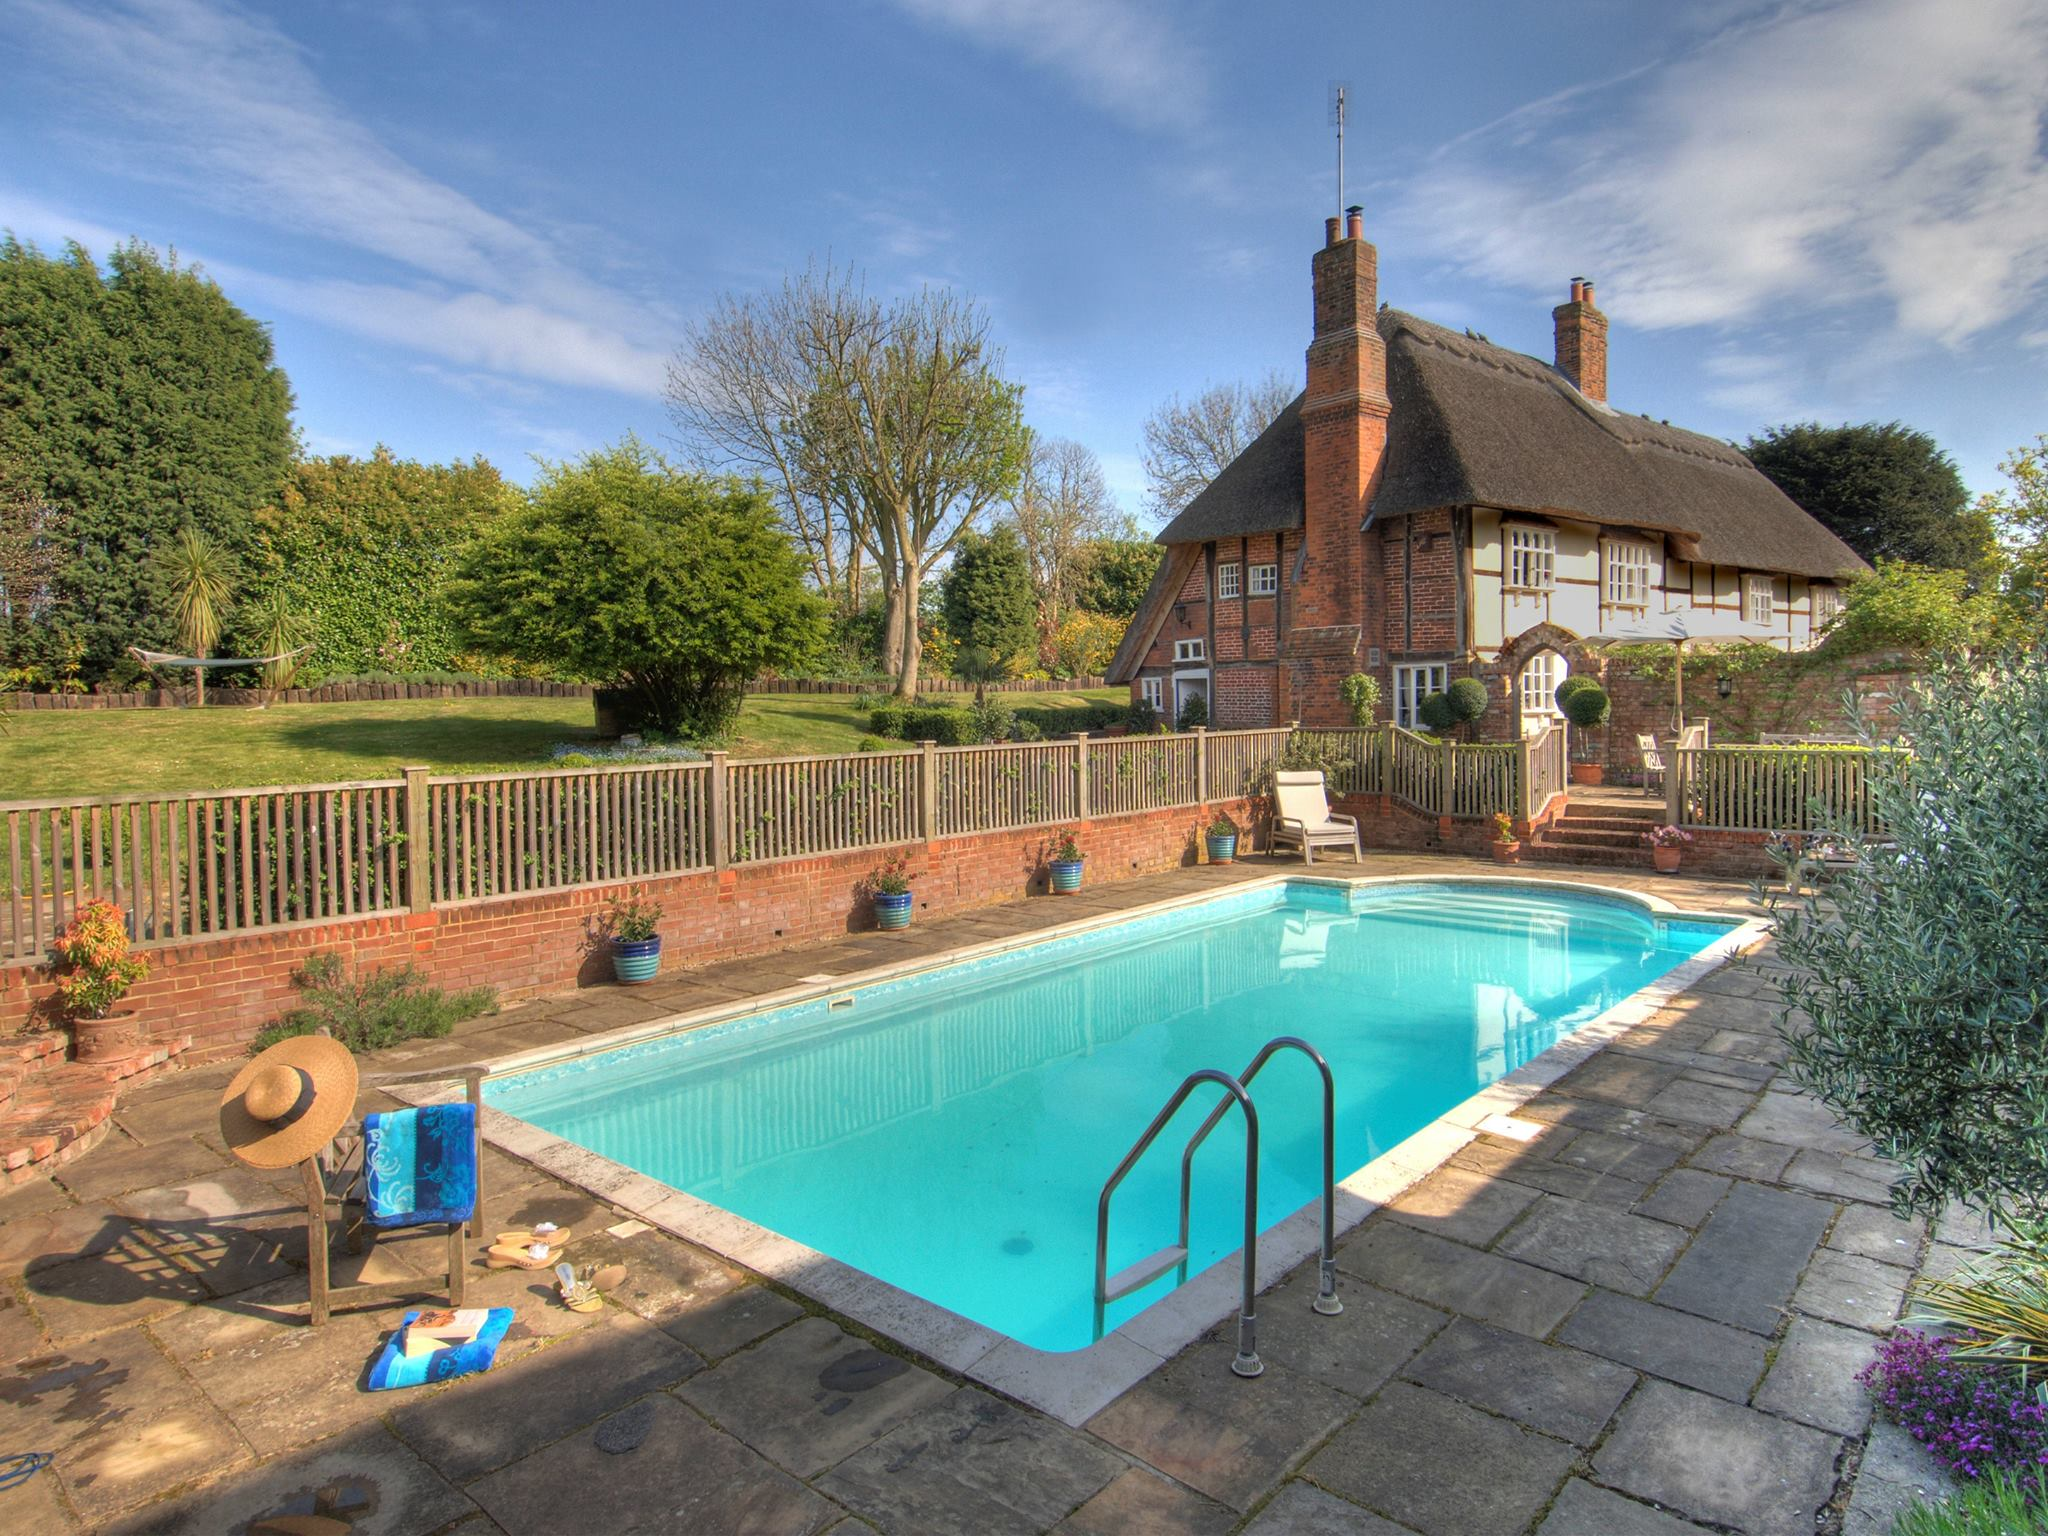 Swimming Pool Specials : Cottages with swimming pools special offers toddlerbreaks